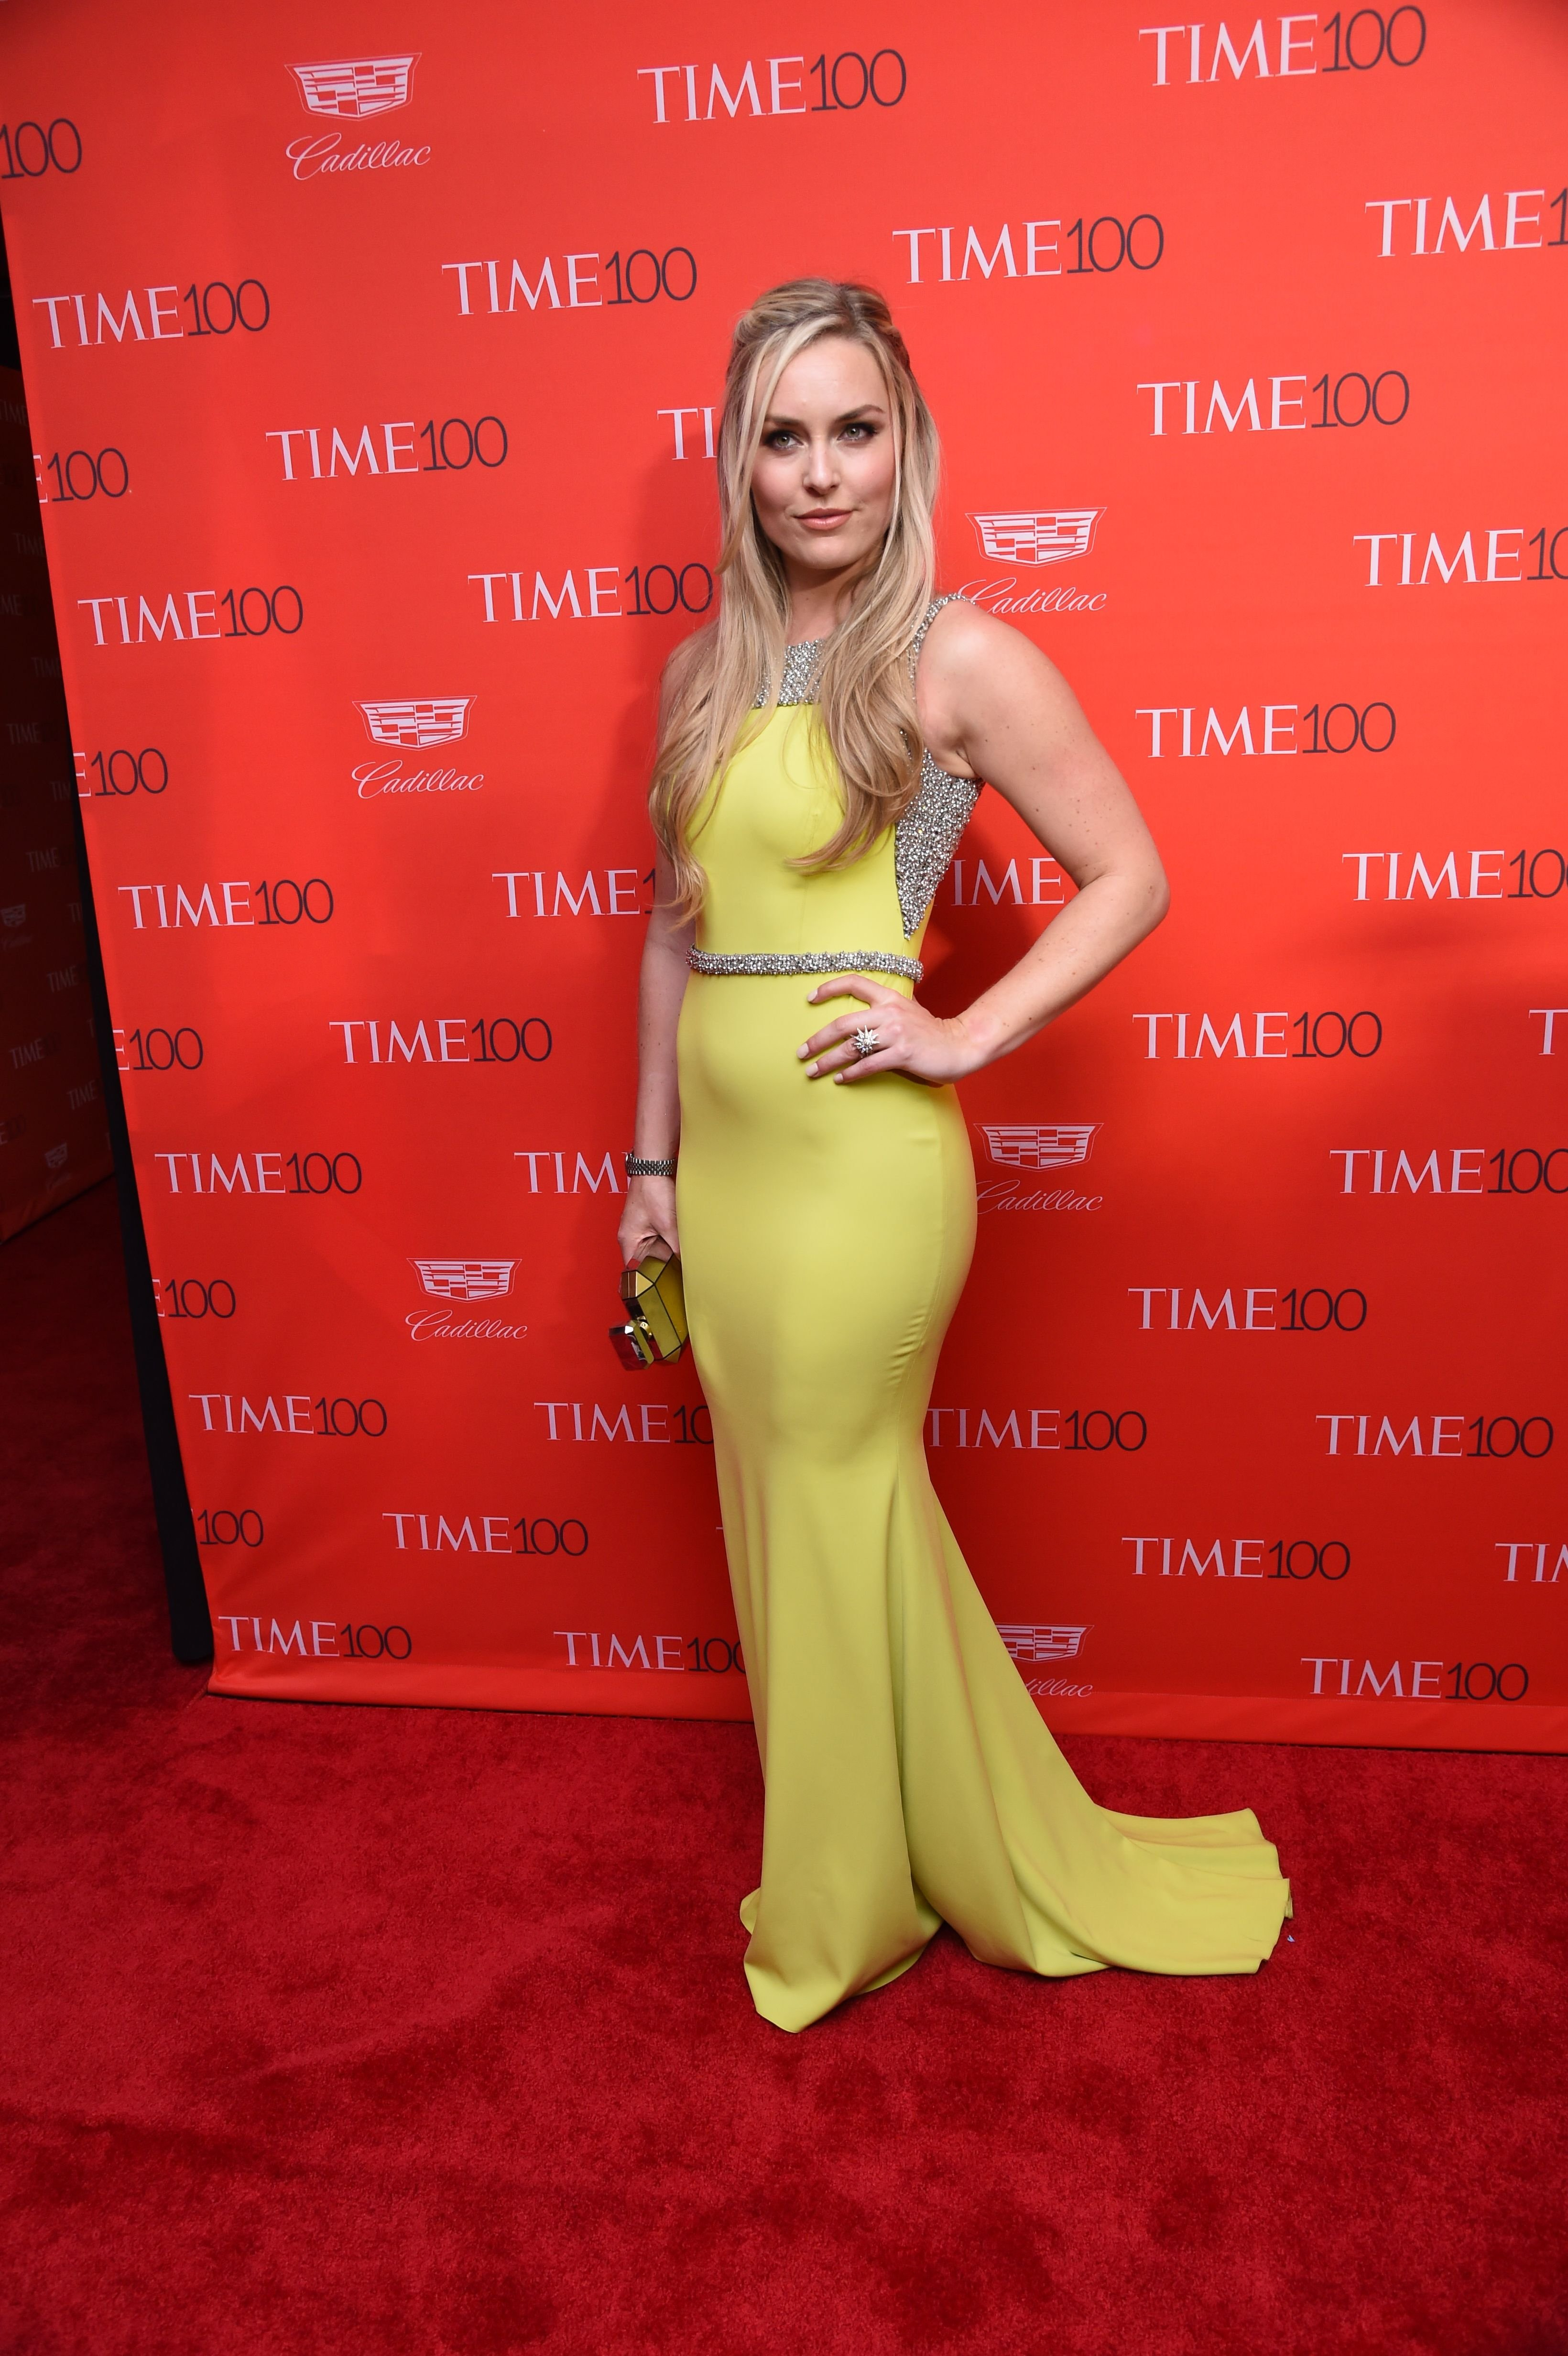 Lindsey Vonn at the                     TIME 100 Gala in New York on April 26, 2016.